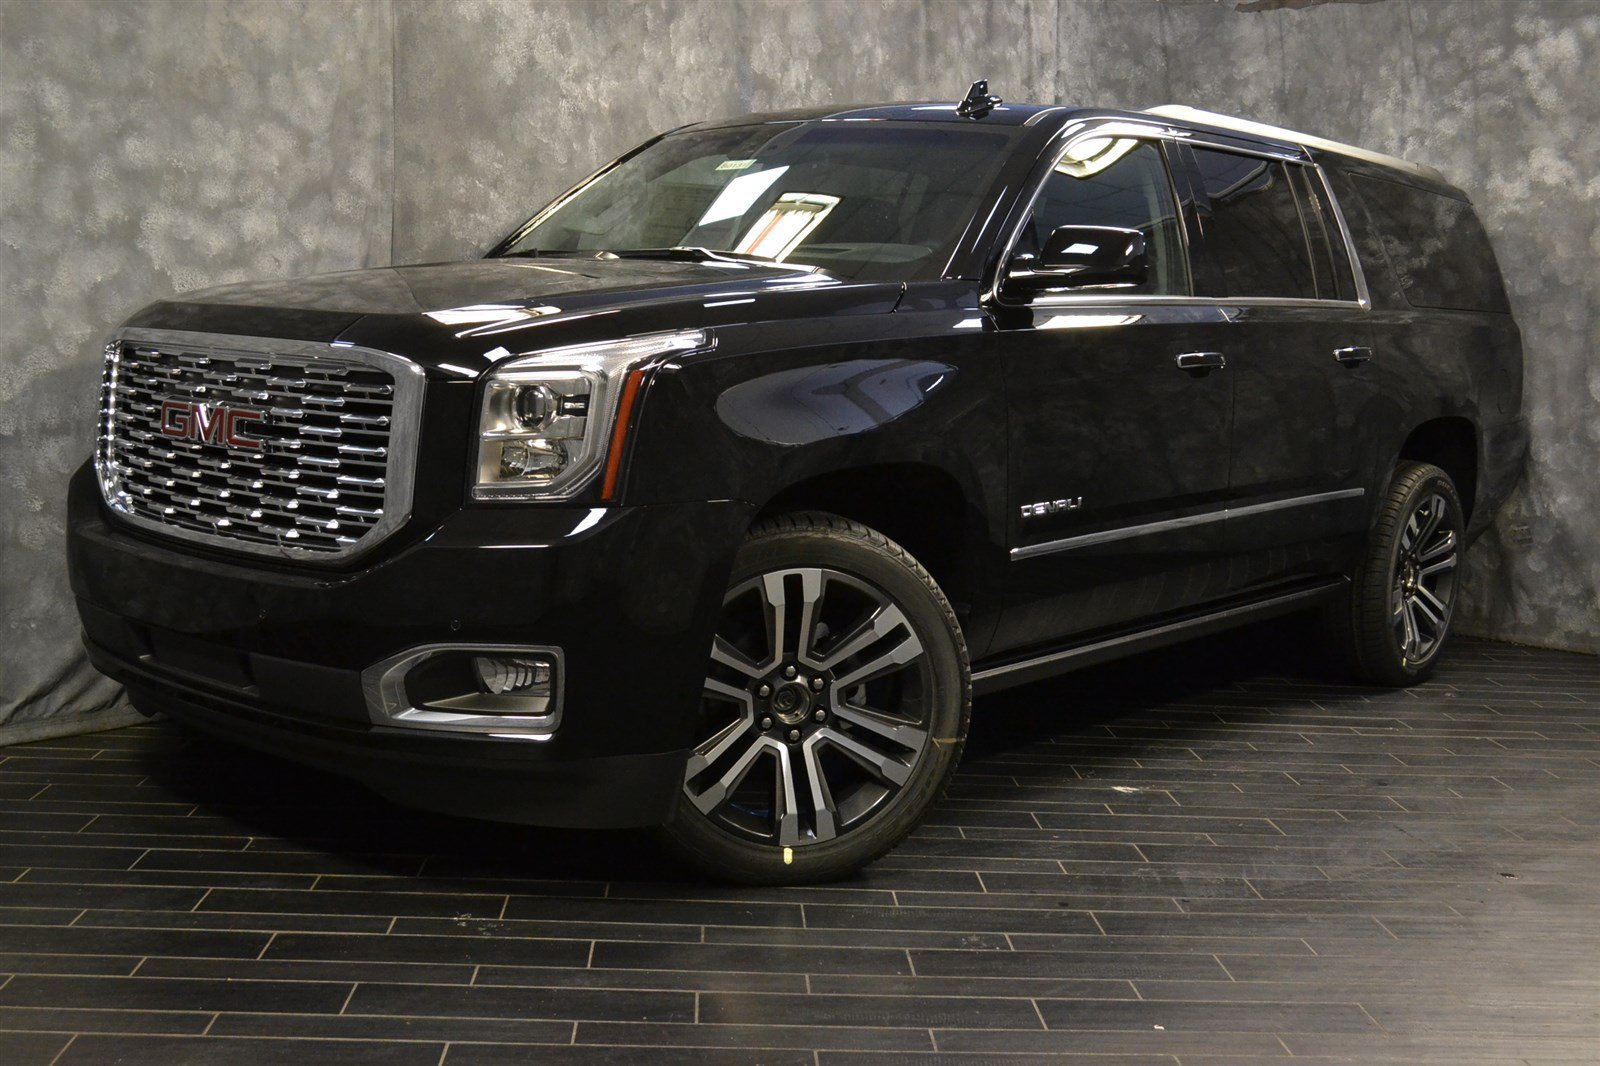 2018 gmc xl denali. beautiful denali new 2018 gmc yukon xl denali on gmc xl denali